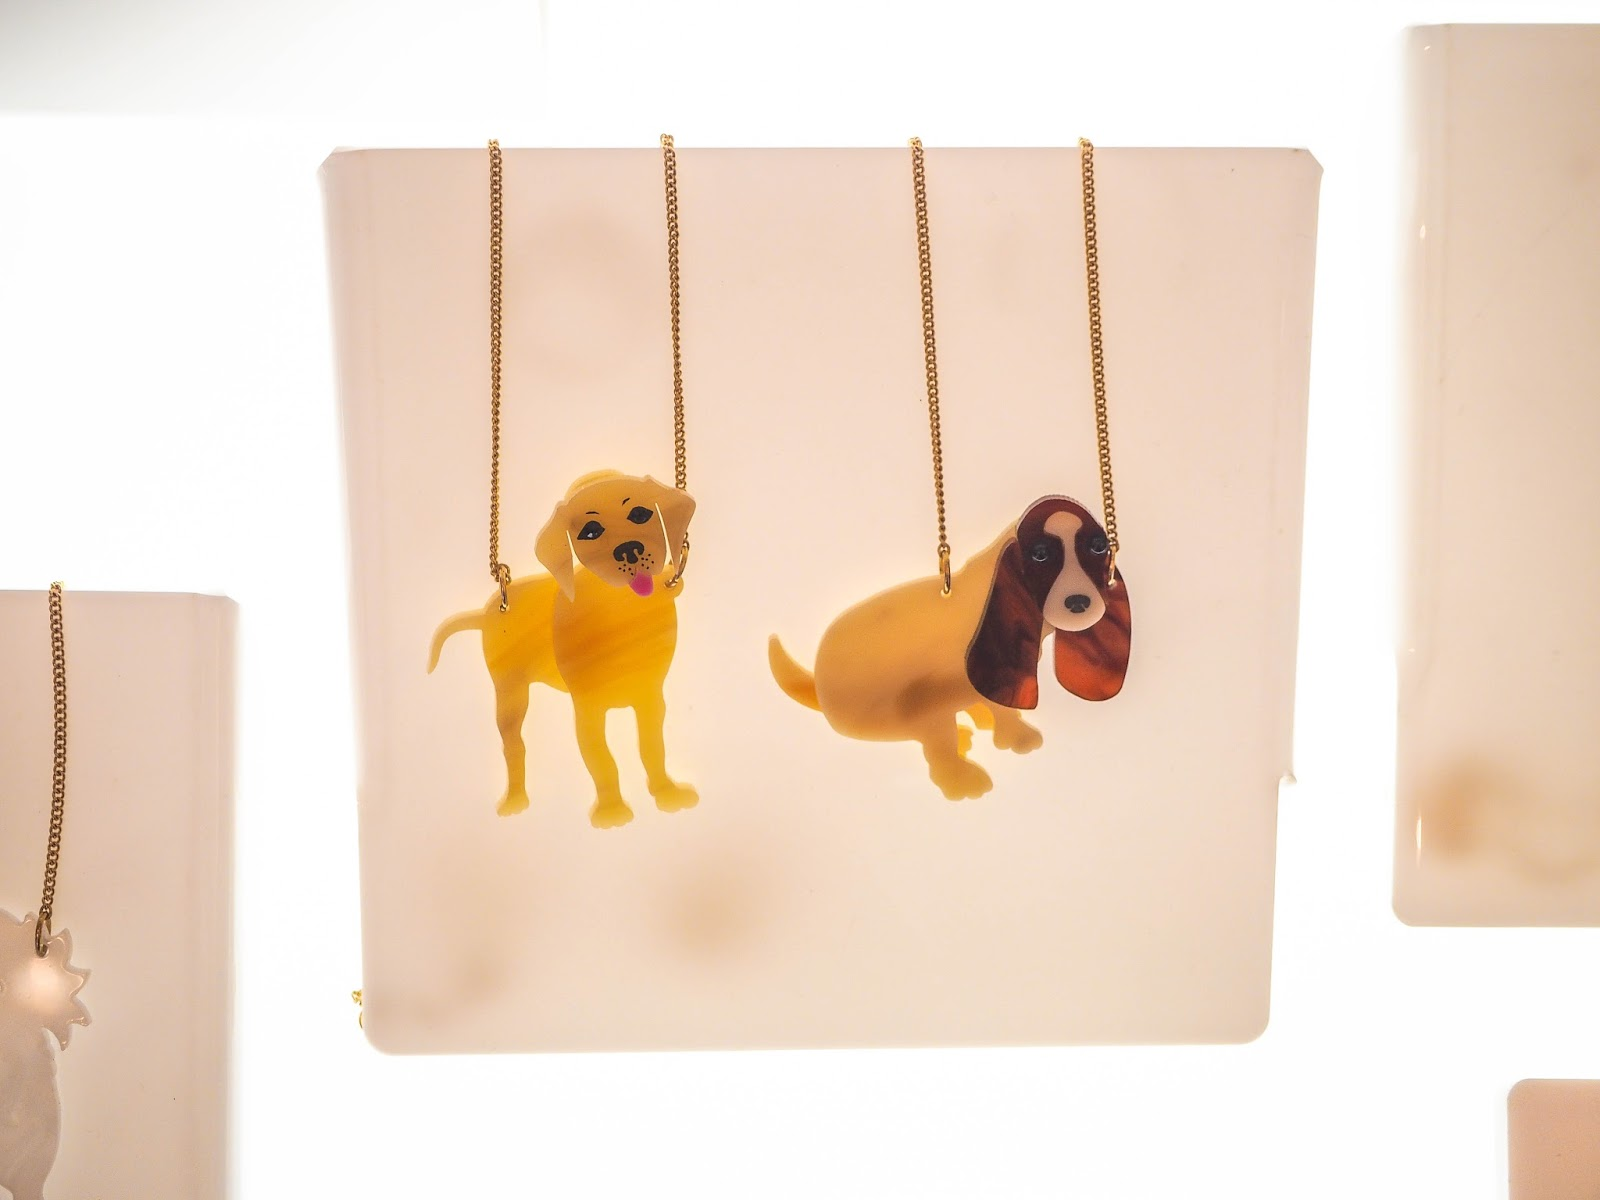 Tatty Devine Battersea Dogs Home collection